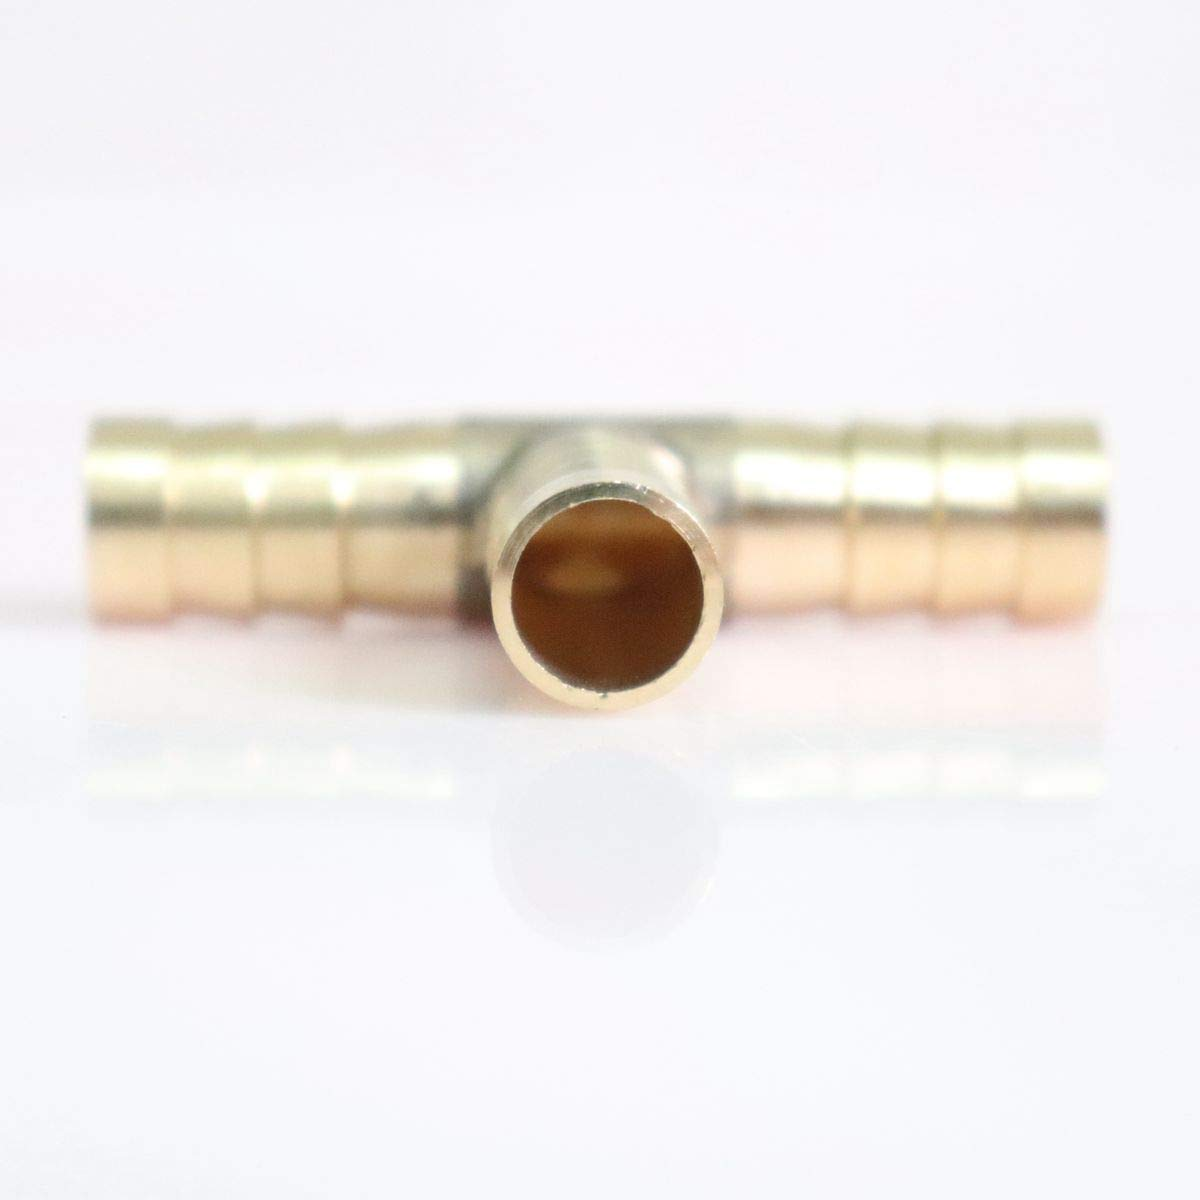 Tee-Shaped 3 Way Brass Hose Barb Fitting Pipe Tubing Splicer Fuel Water Gas Air ,3//8 x 3//8 x 3//8 Barb